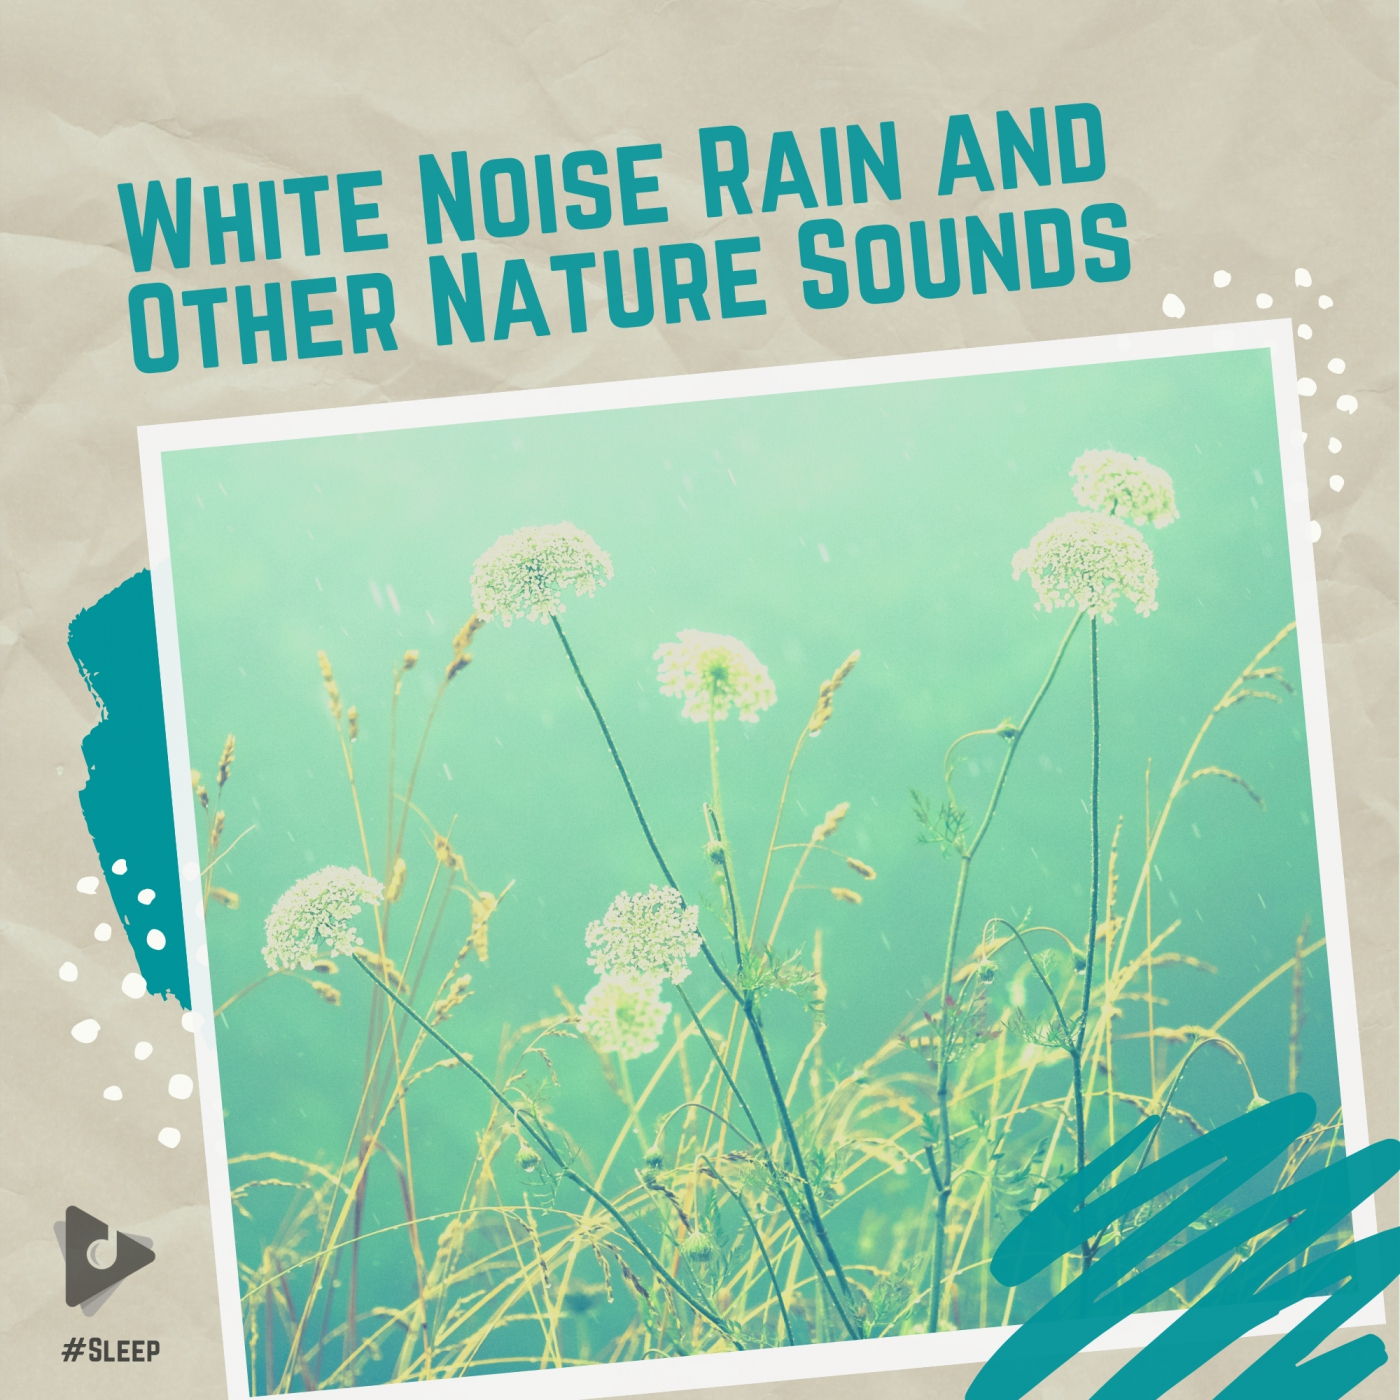 White Noise Rain and Other Nature Sounds